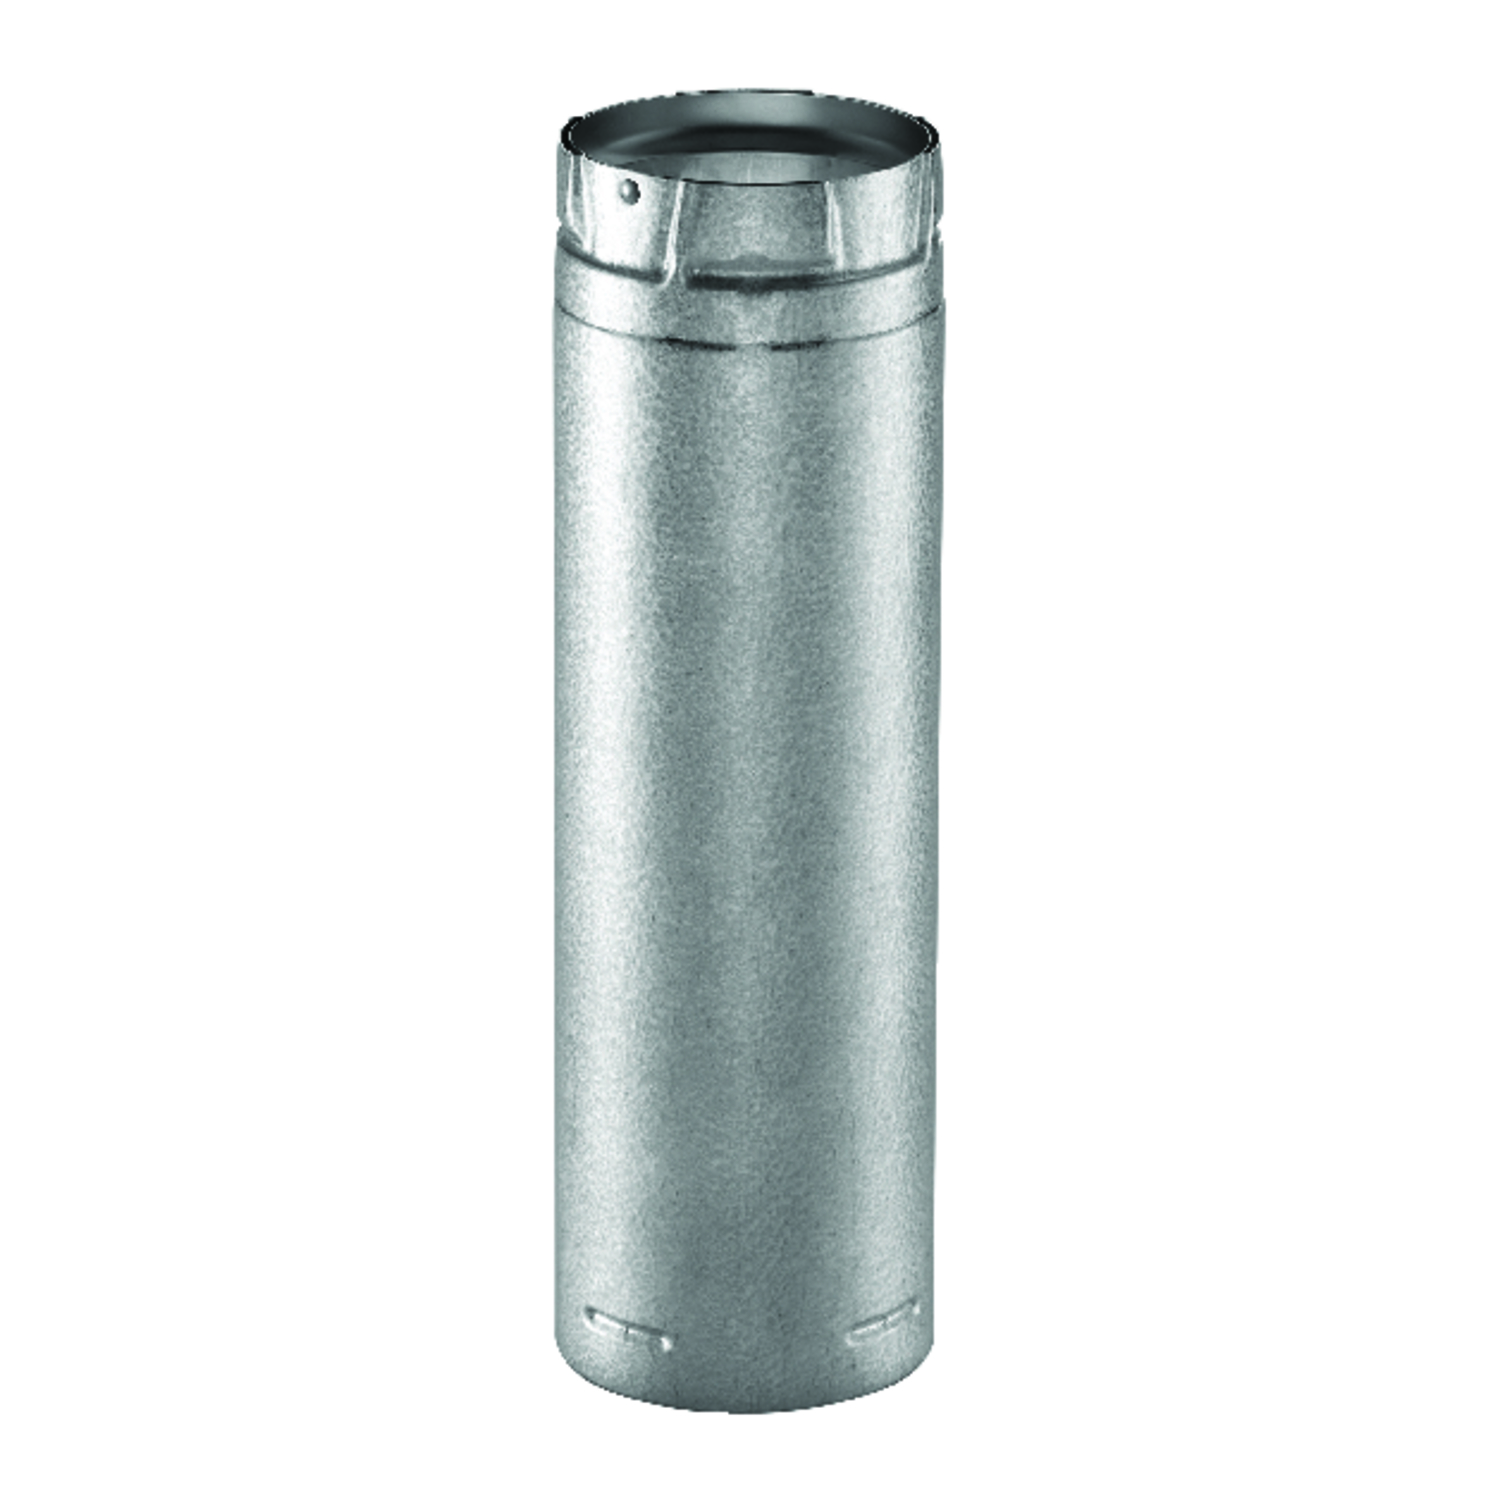 Duravent  3 in. Dia. x 12 in. L Galvanized Steel  Stove Pipe